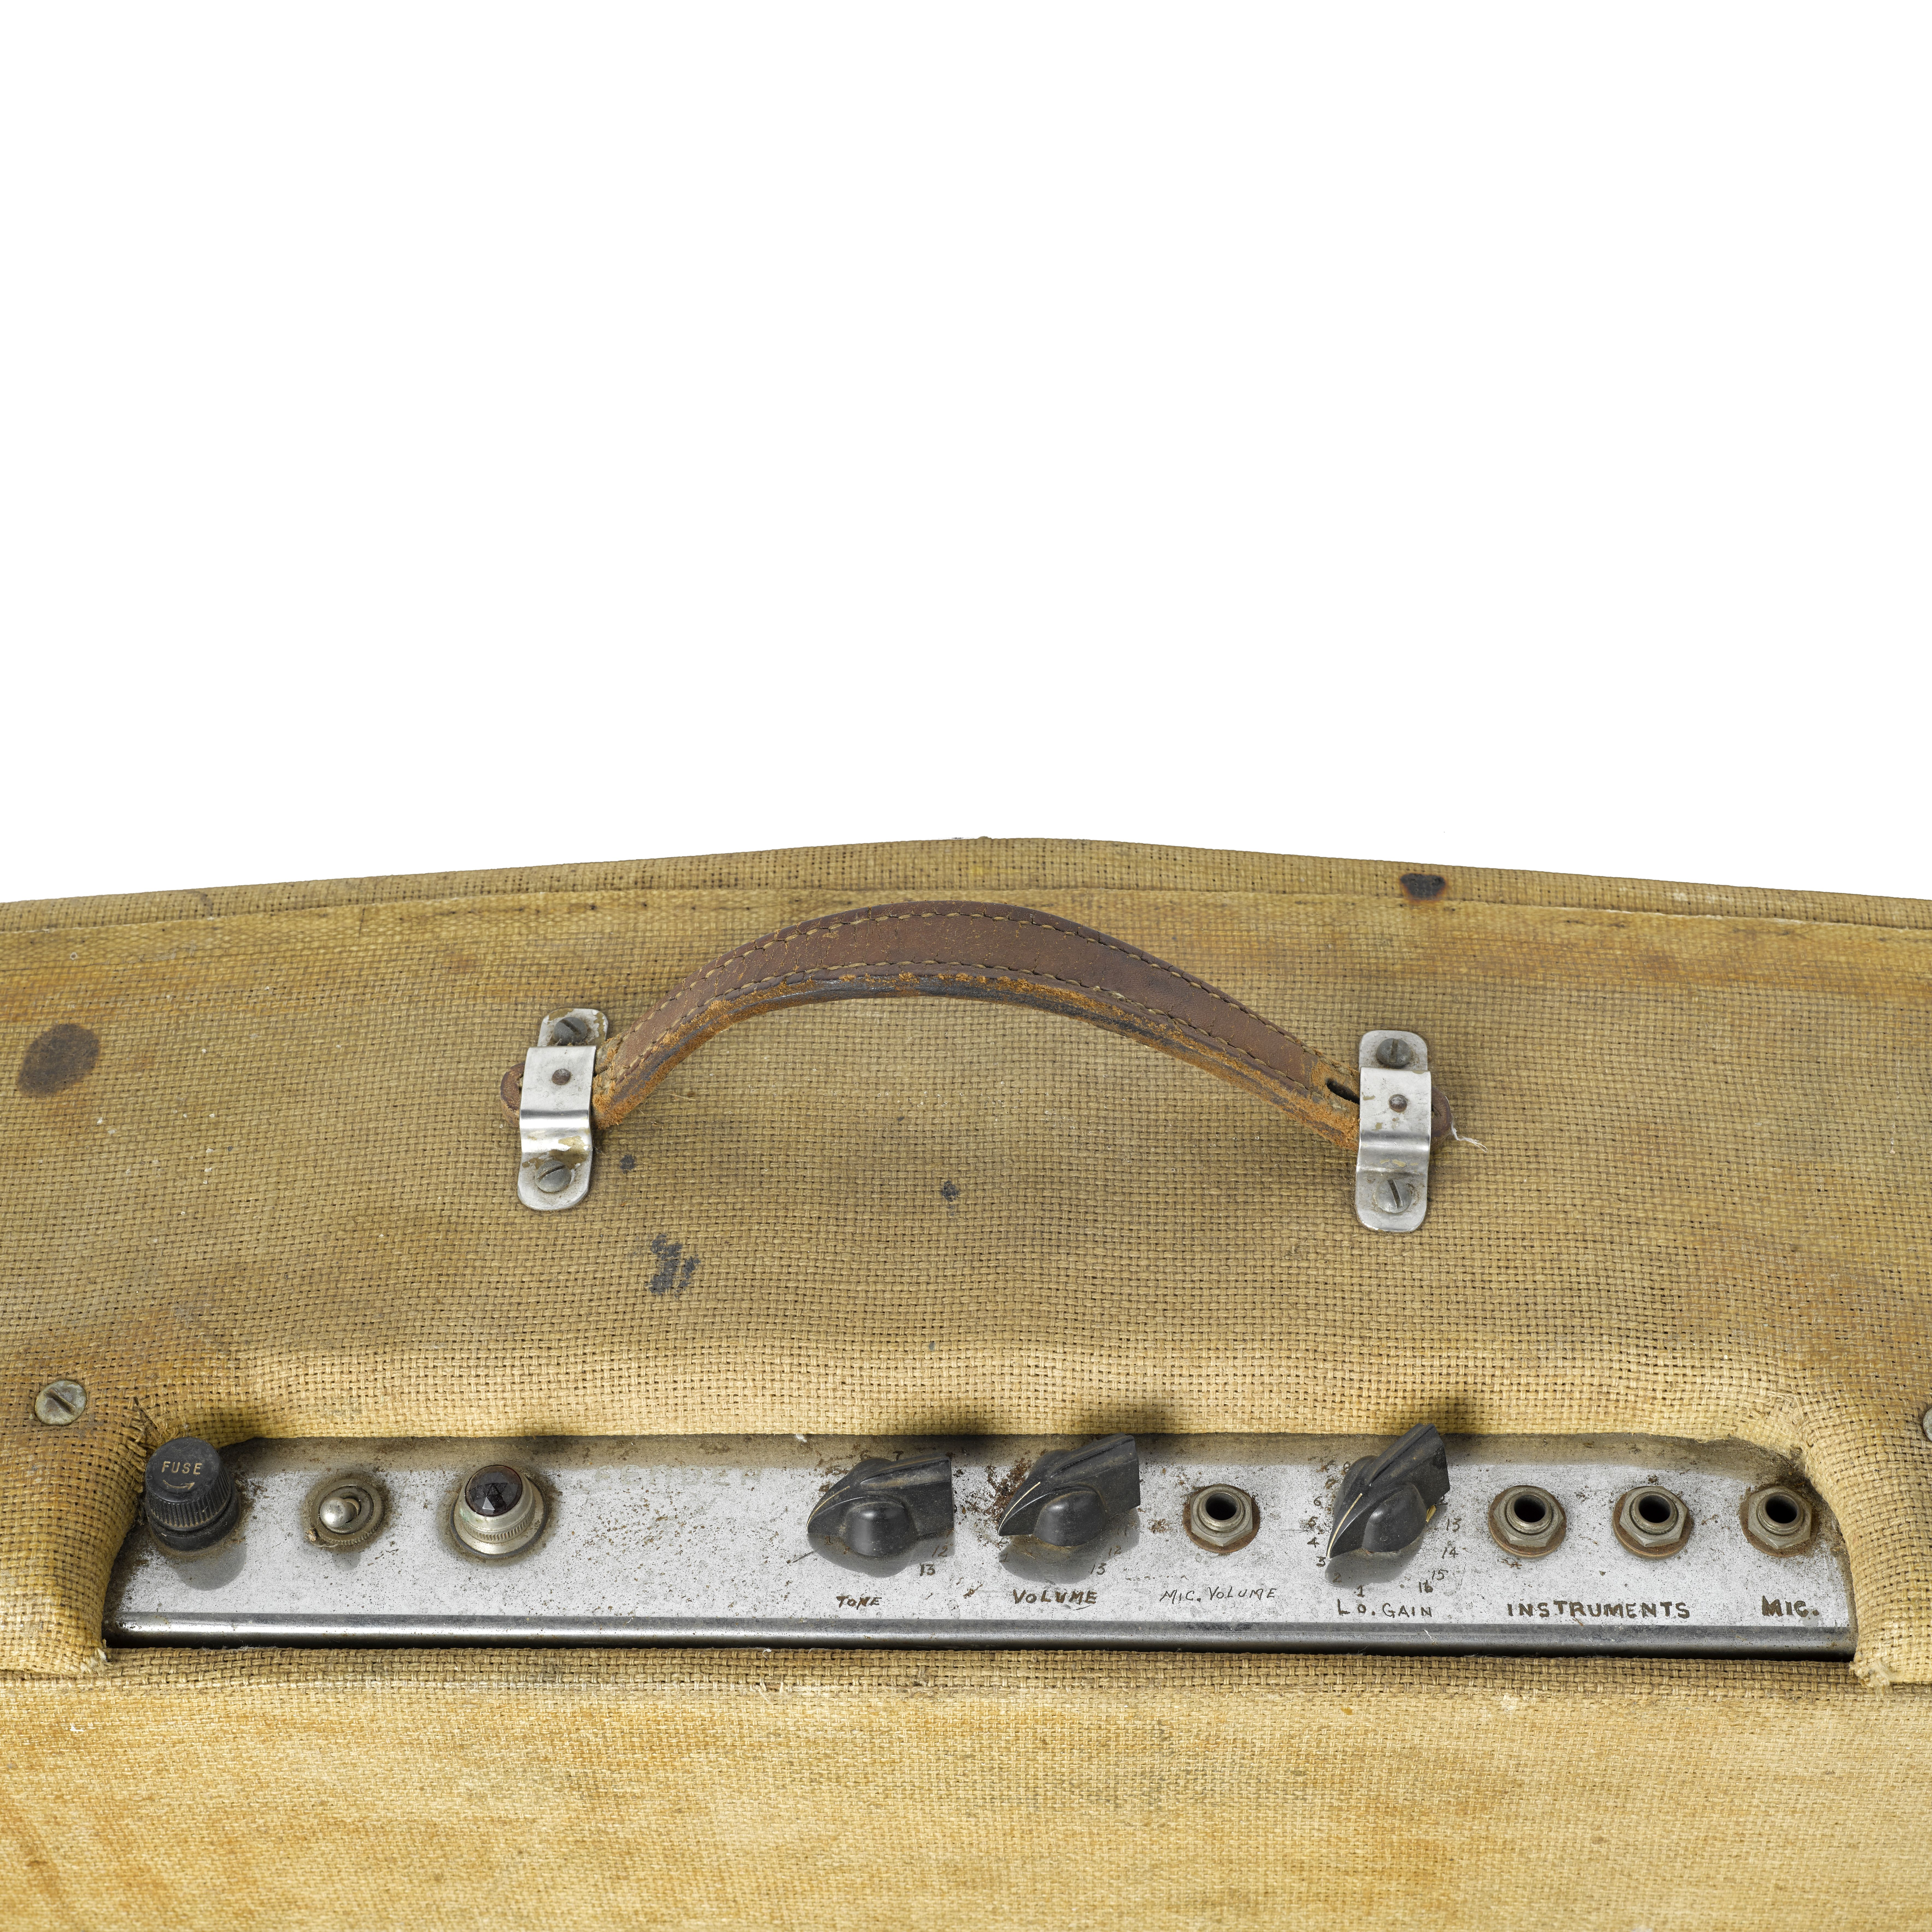 AN EARLY FENDER DUAL PROFESSIONAL SILVERFACE AMPLIFIER OWNED AND USED BY JERRY GARCIA - Image 2 of 2